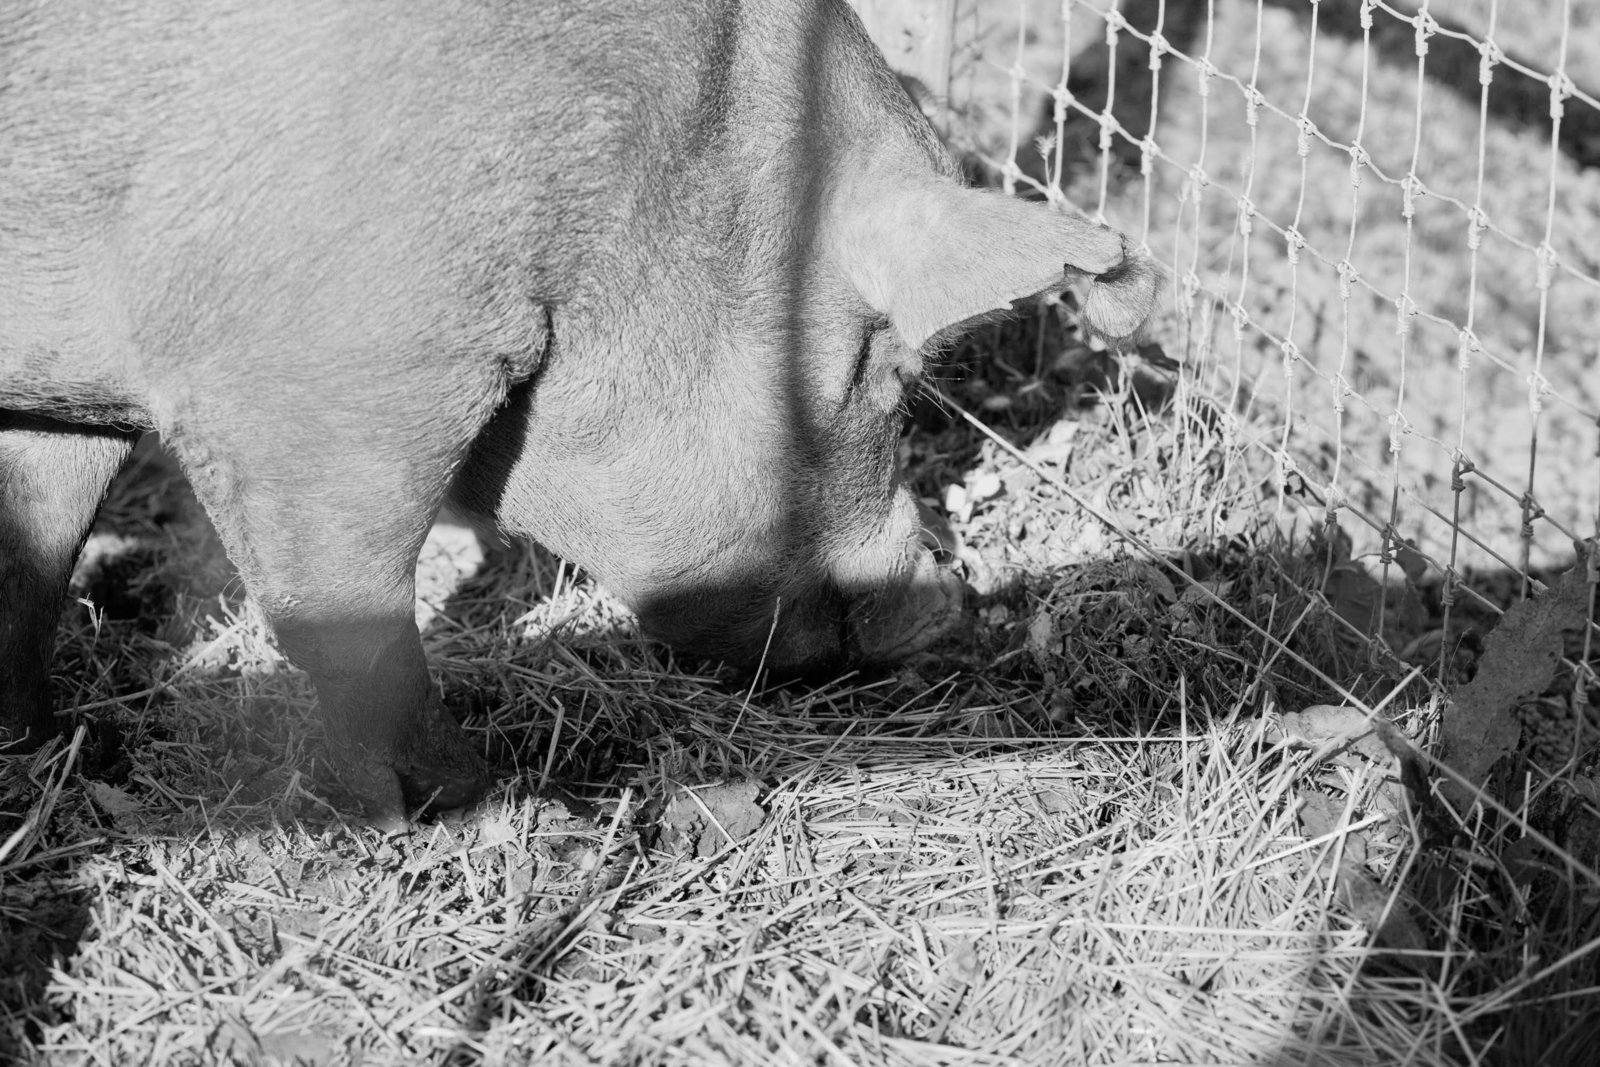 pig-hay-wyebrook-farm-honey-brook-pennsylvania-kate-timbers-photography-2148